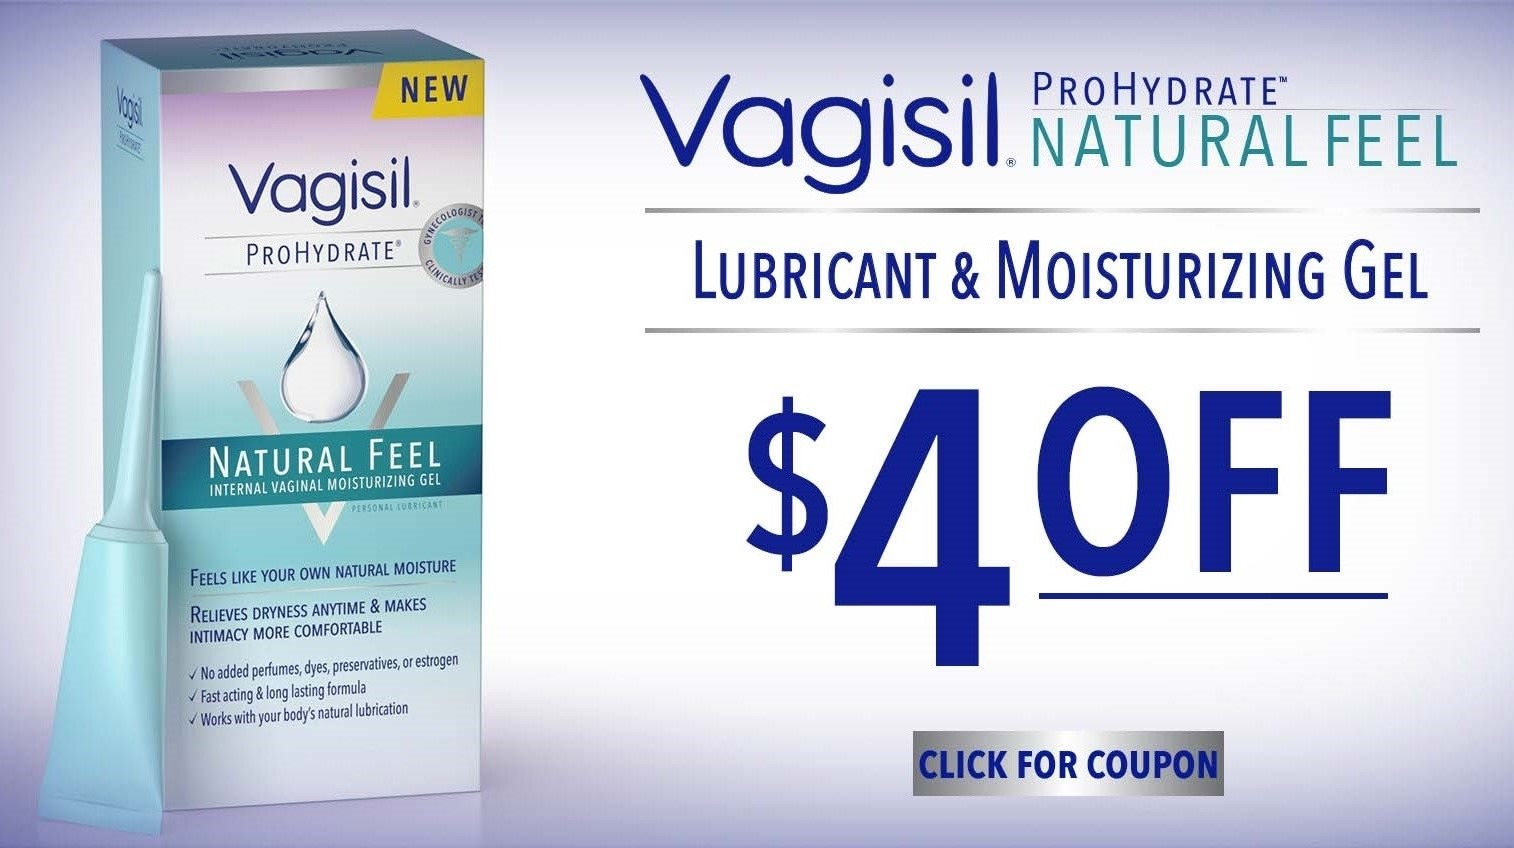 Free Sample Of Vagisil Prohydrate Natural Feel